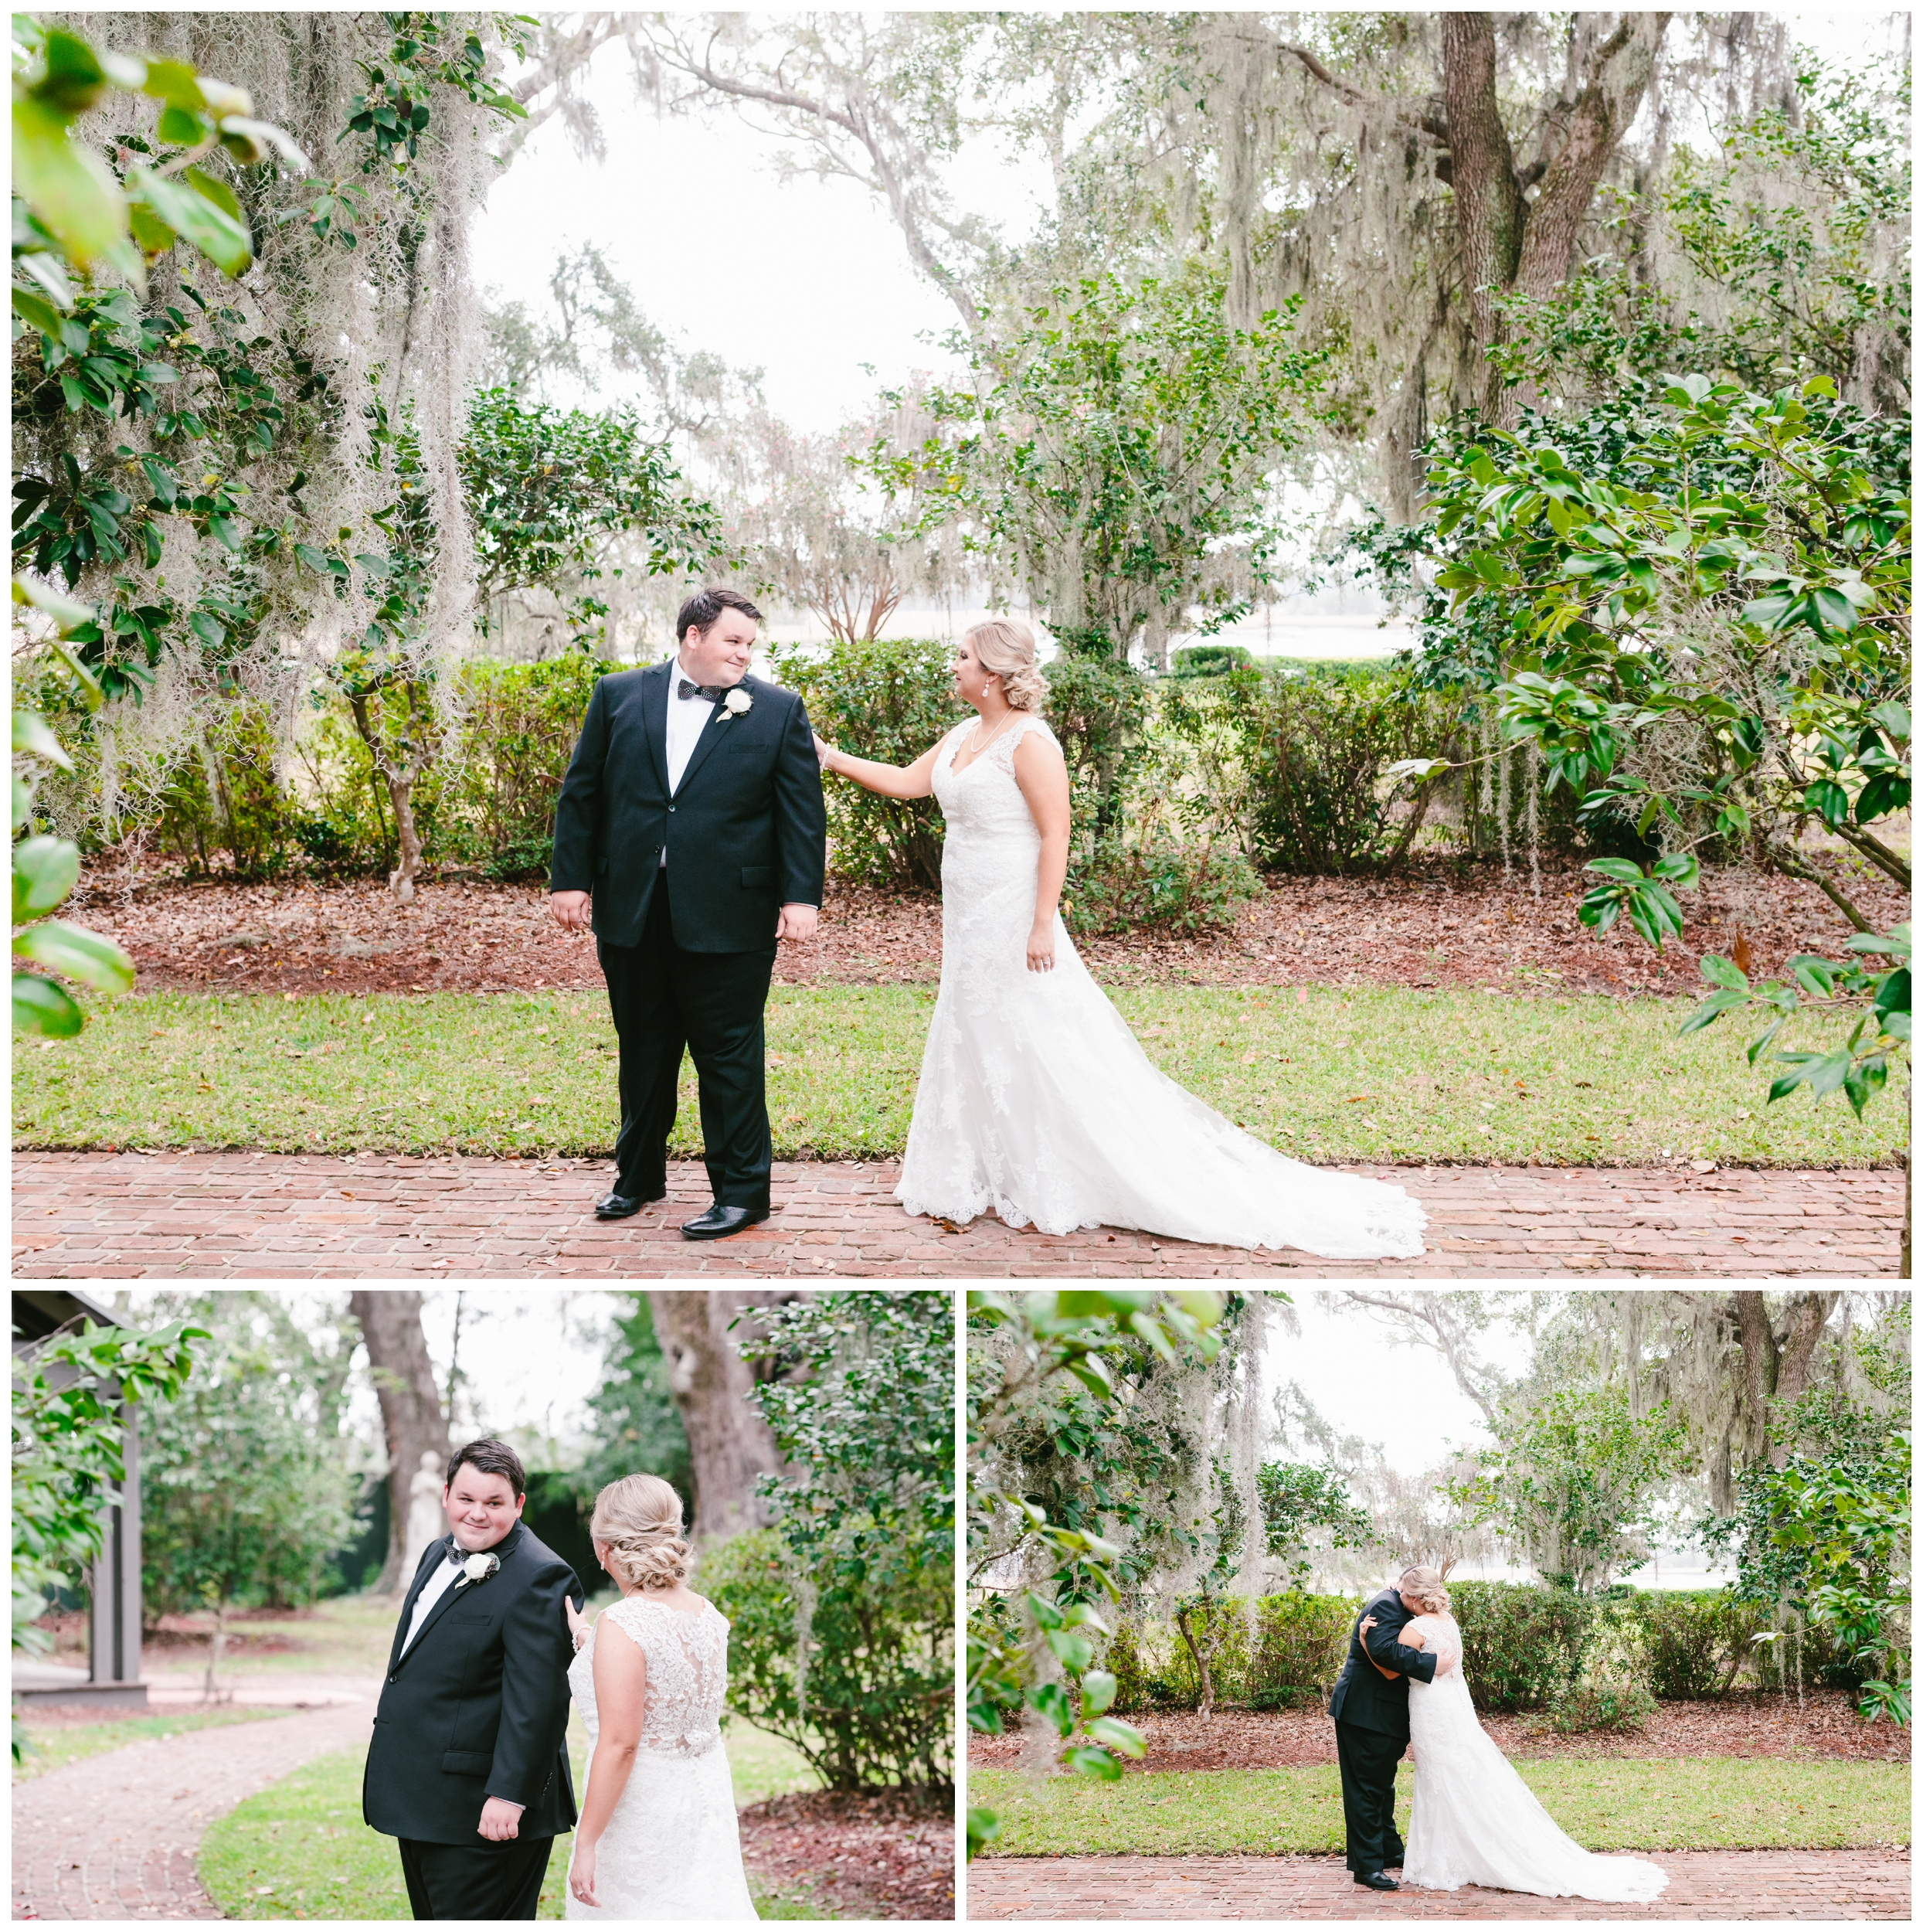 the bride and groom shared a sweet first look at old wide awake park.